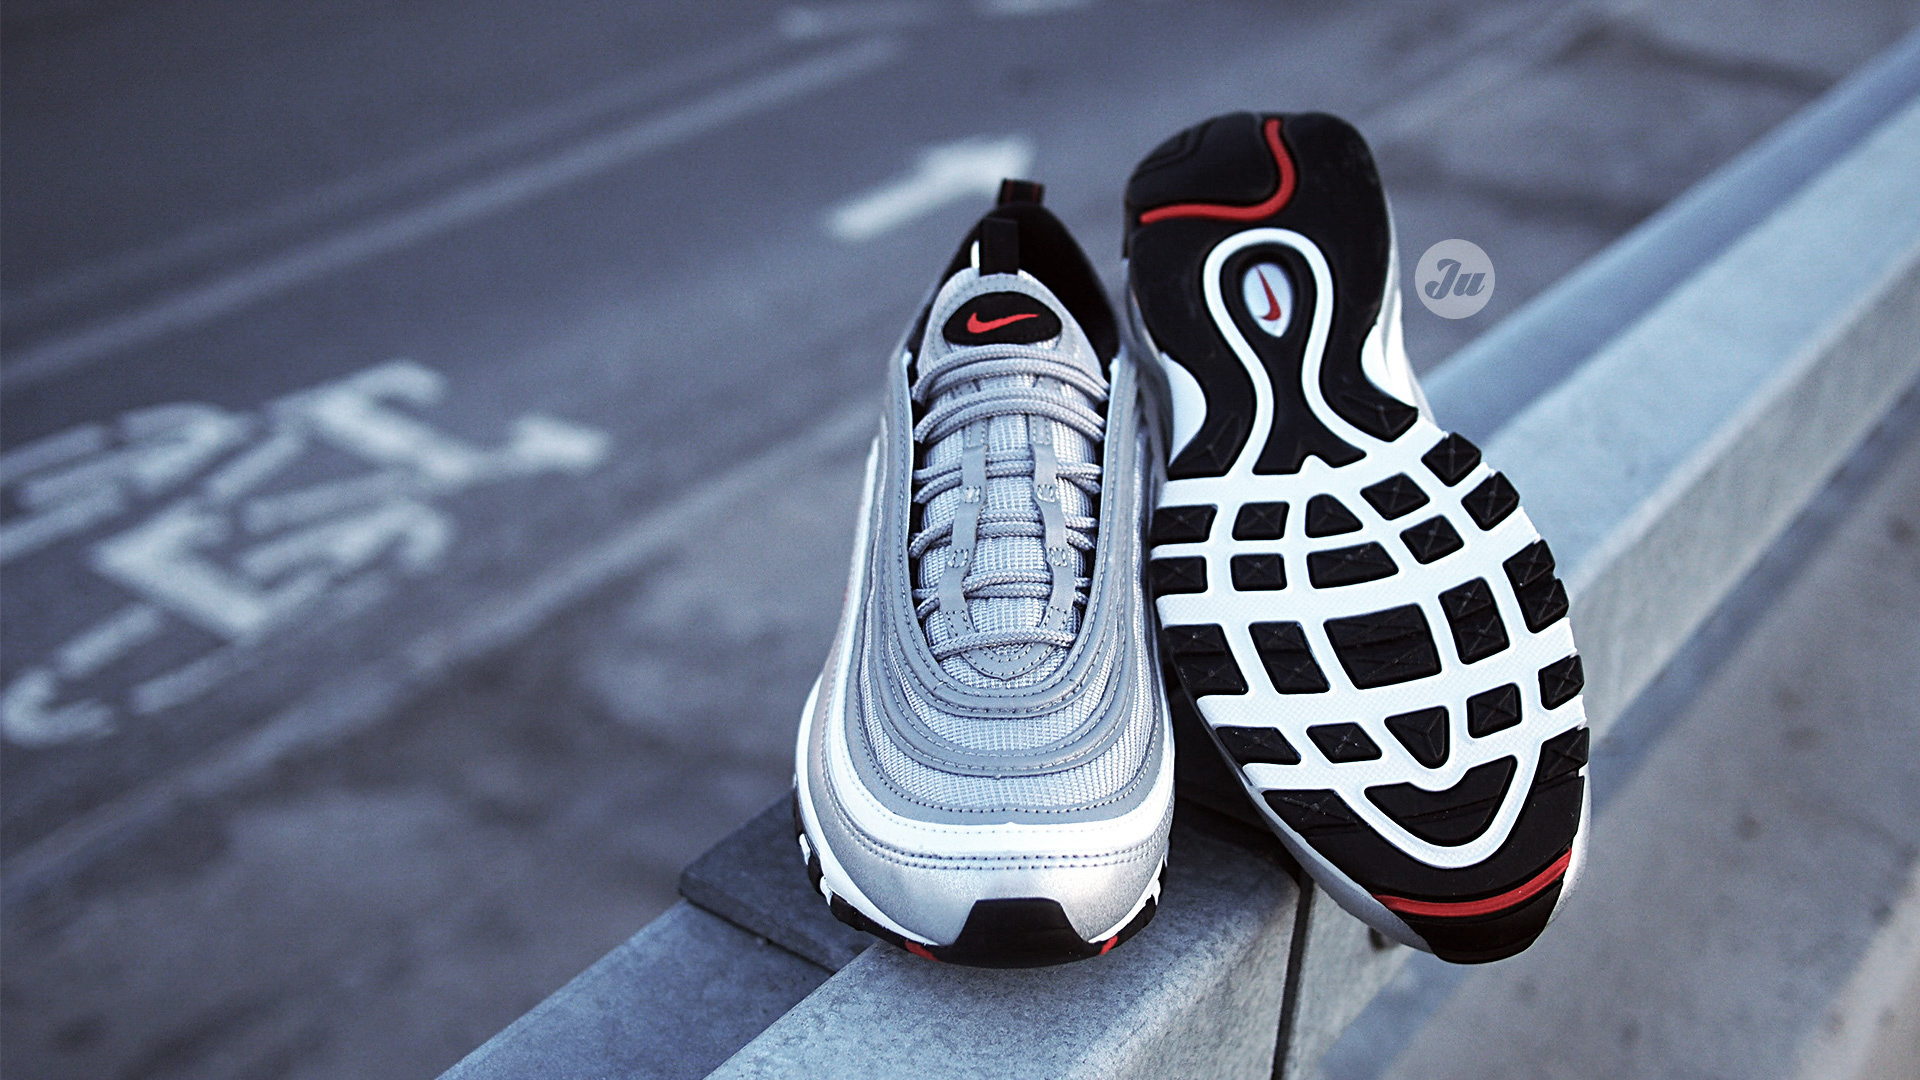 Swarovski Covered Cheap Nike Air Max 97 Silver Bullet Landing Next